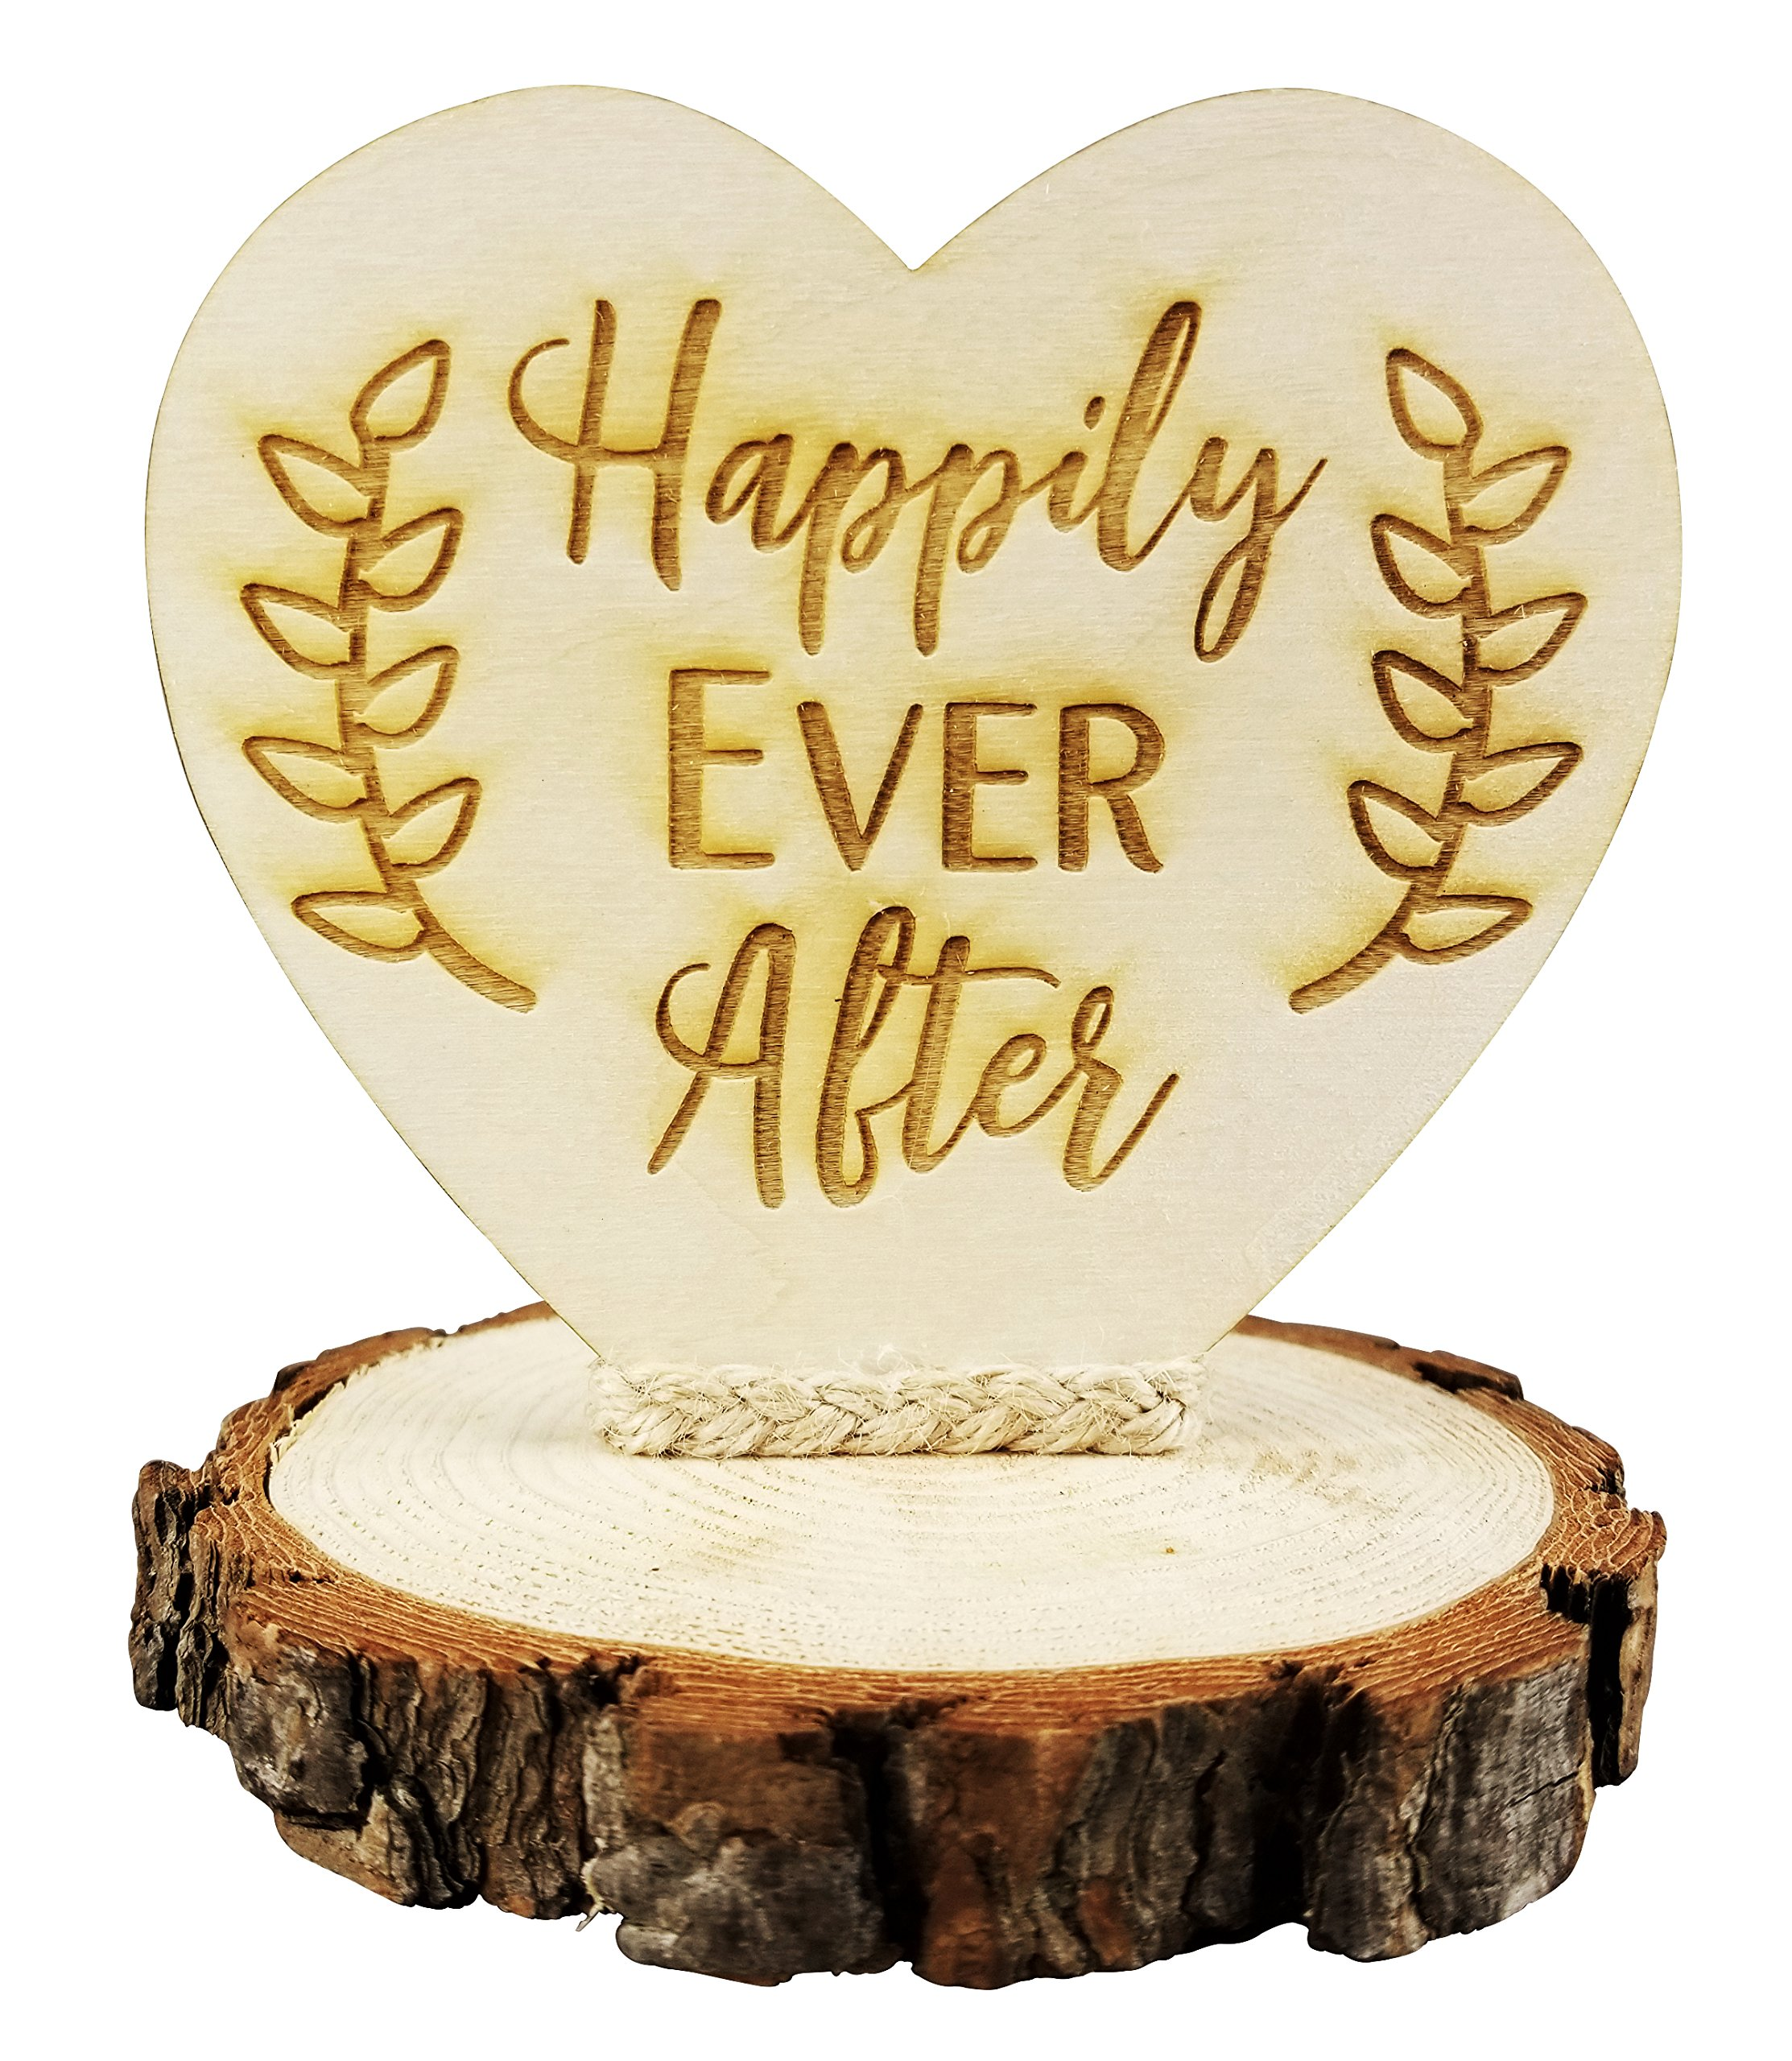 Happily Ever After Rustic Wedding Cake Topper by Wedding Collectibles (Image #1)